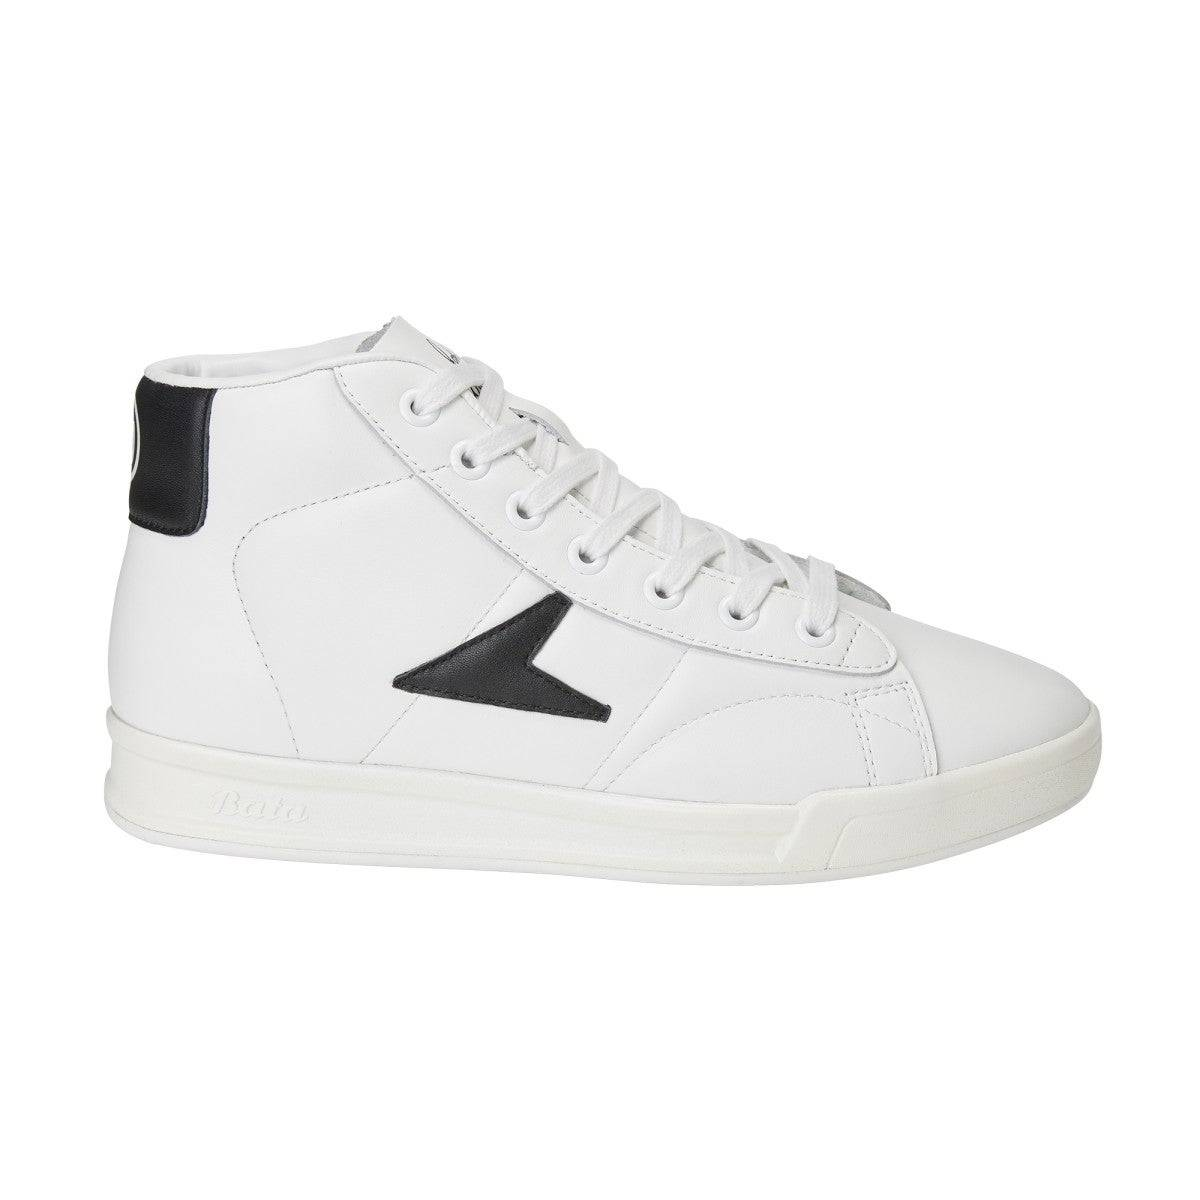 Wilson John Wooden Classic High Top Shoes in White / Black - Size: 7.5 M  - Unisex - White/Black - Size: 7.5 M